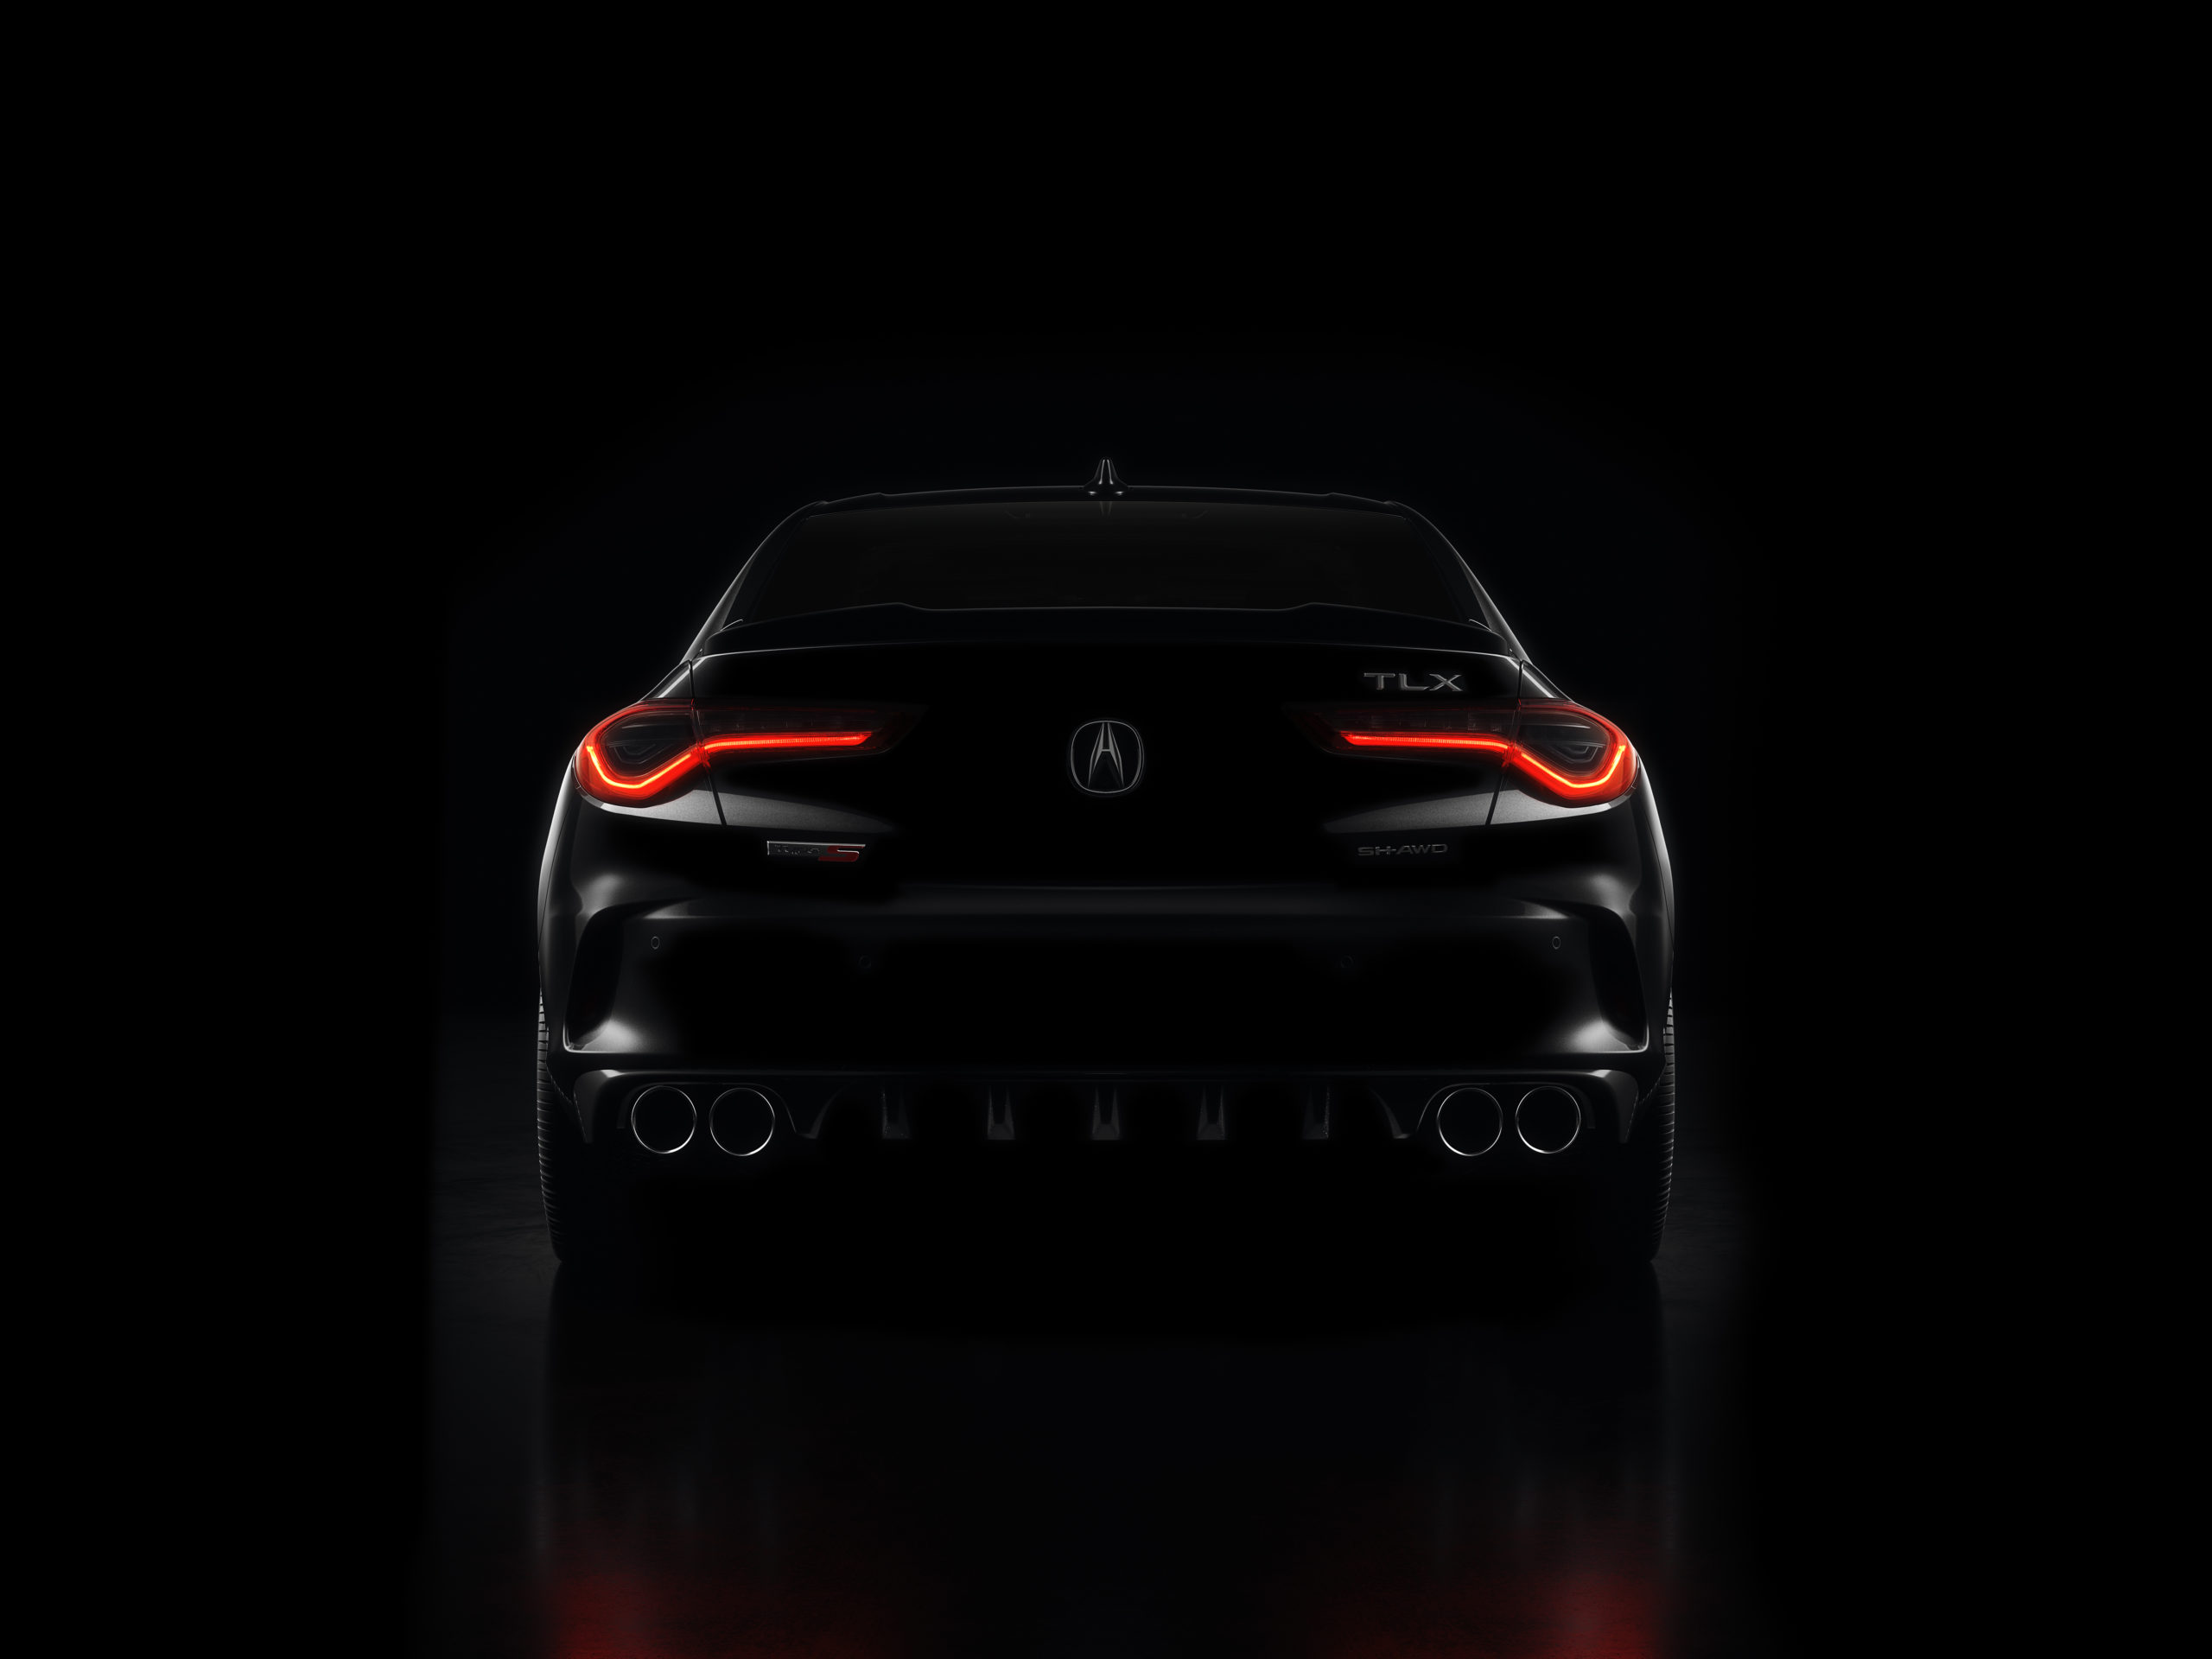 Acura Teases All-New 2021 TLX, Return of Type S to Lineup